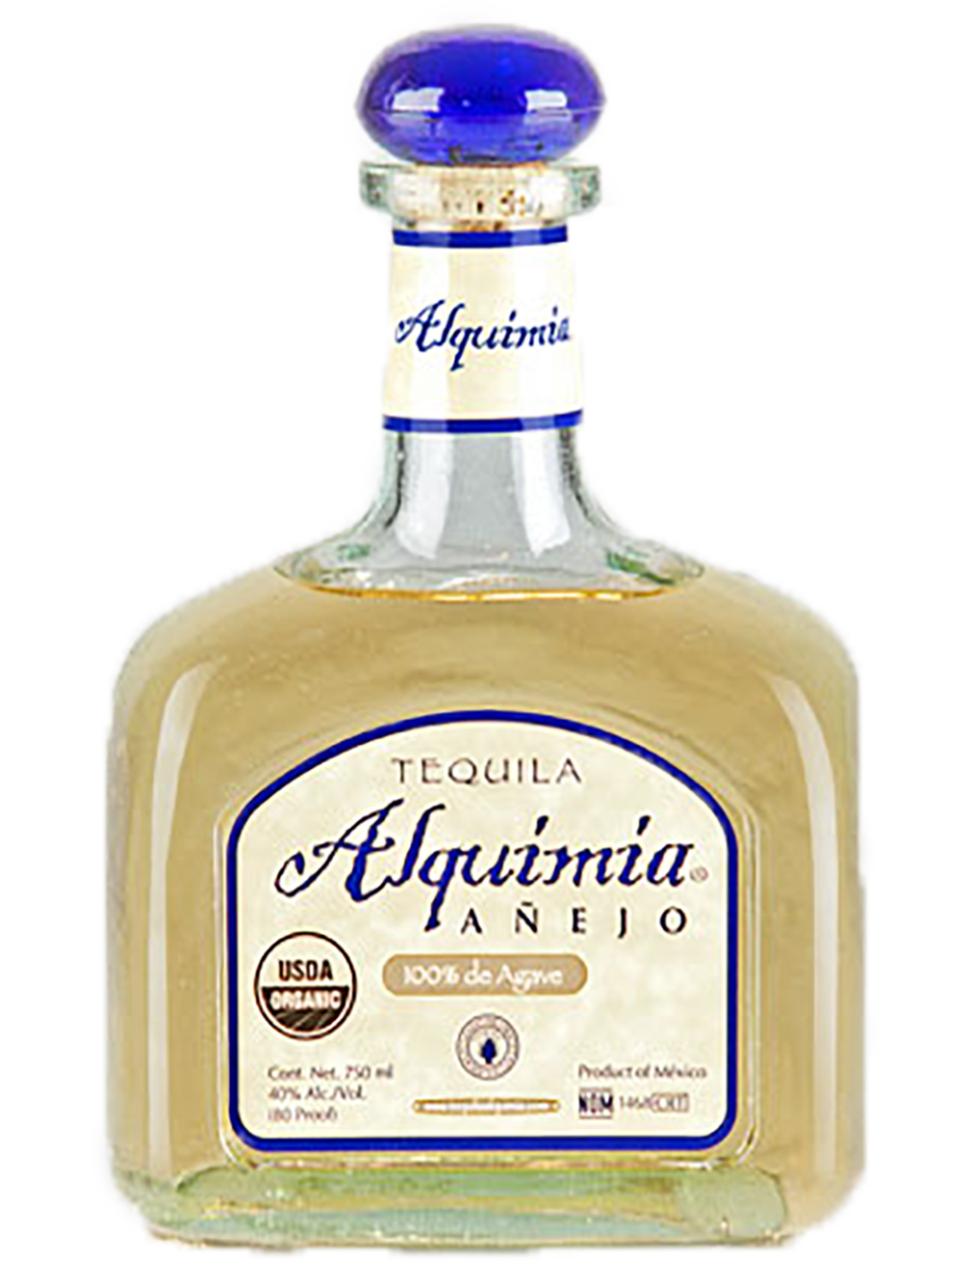 Our tequilas tequila alquimia for Which tequila is best